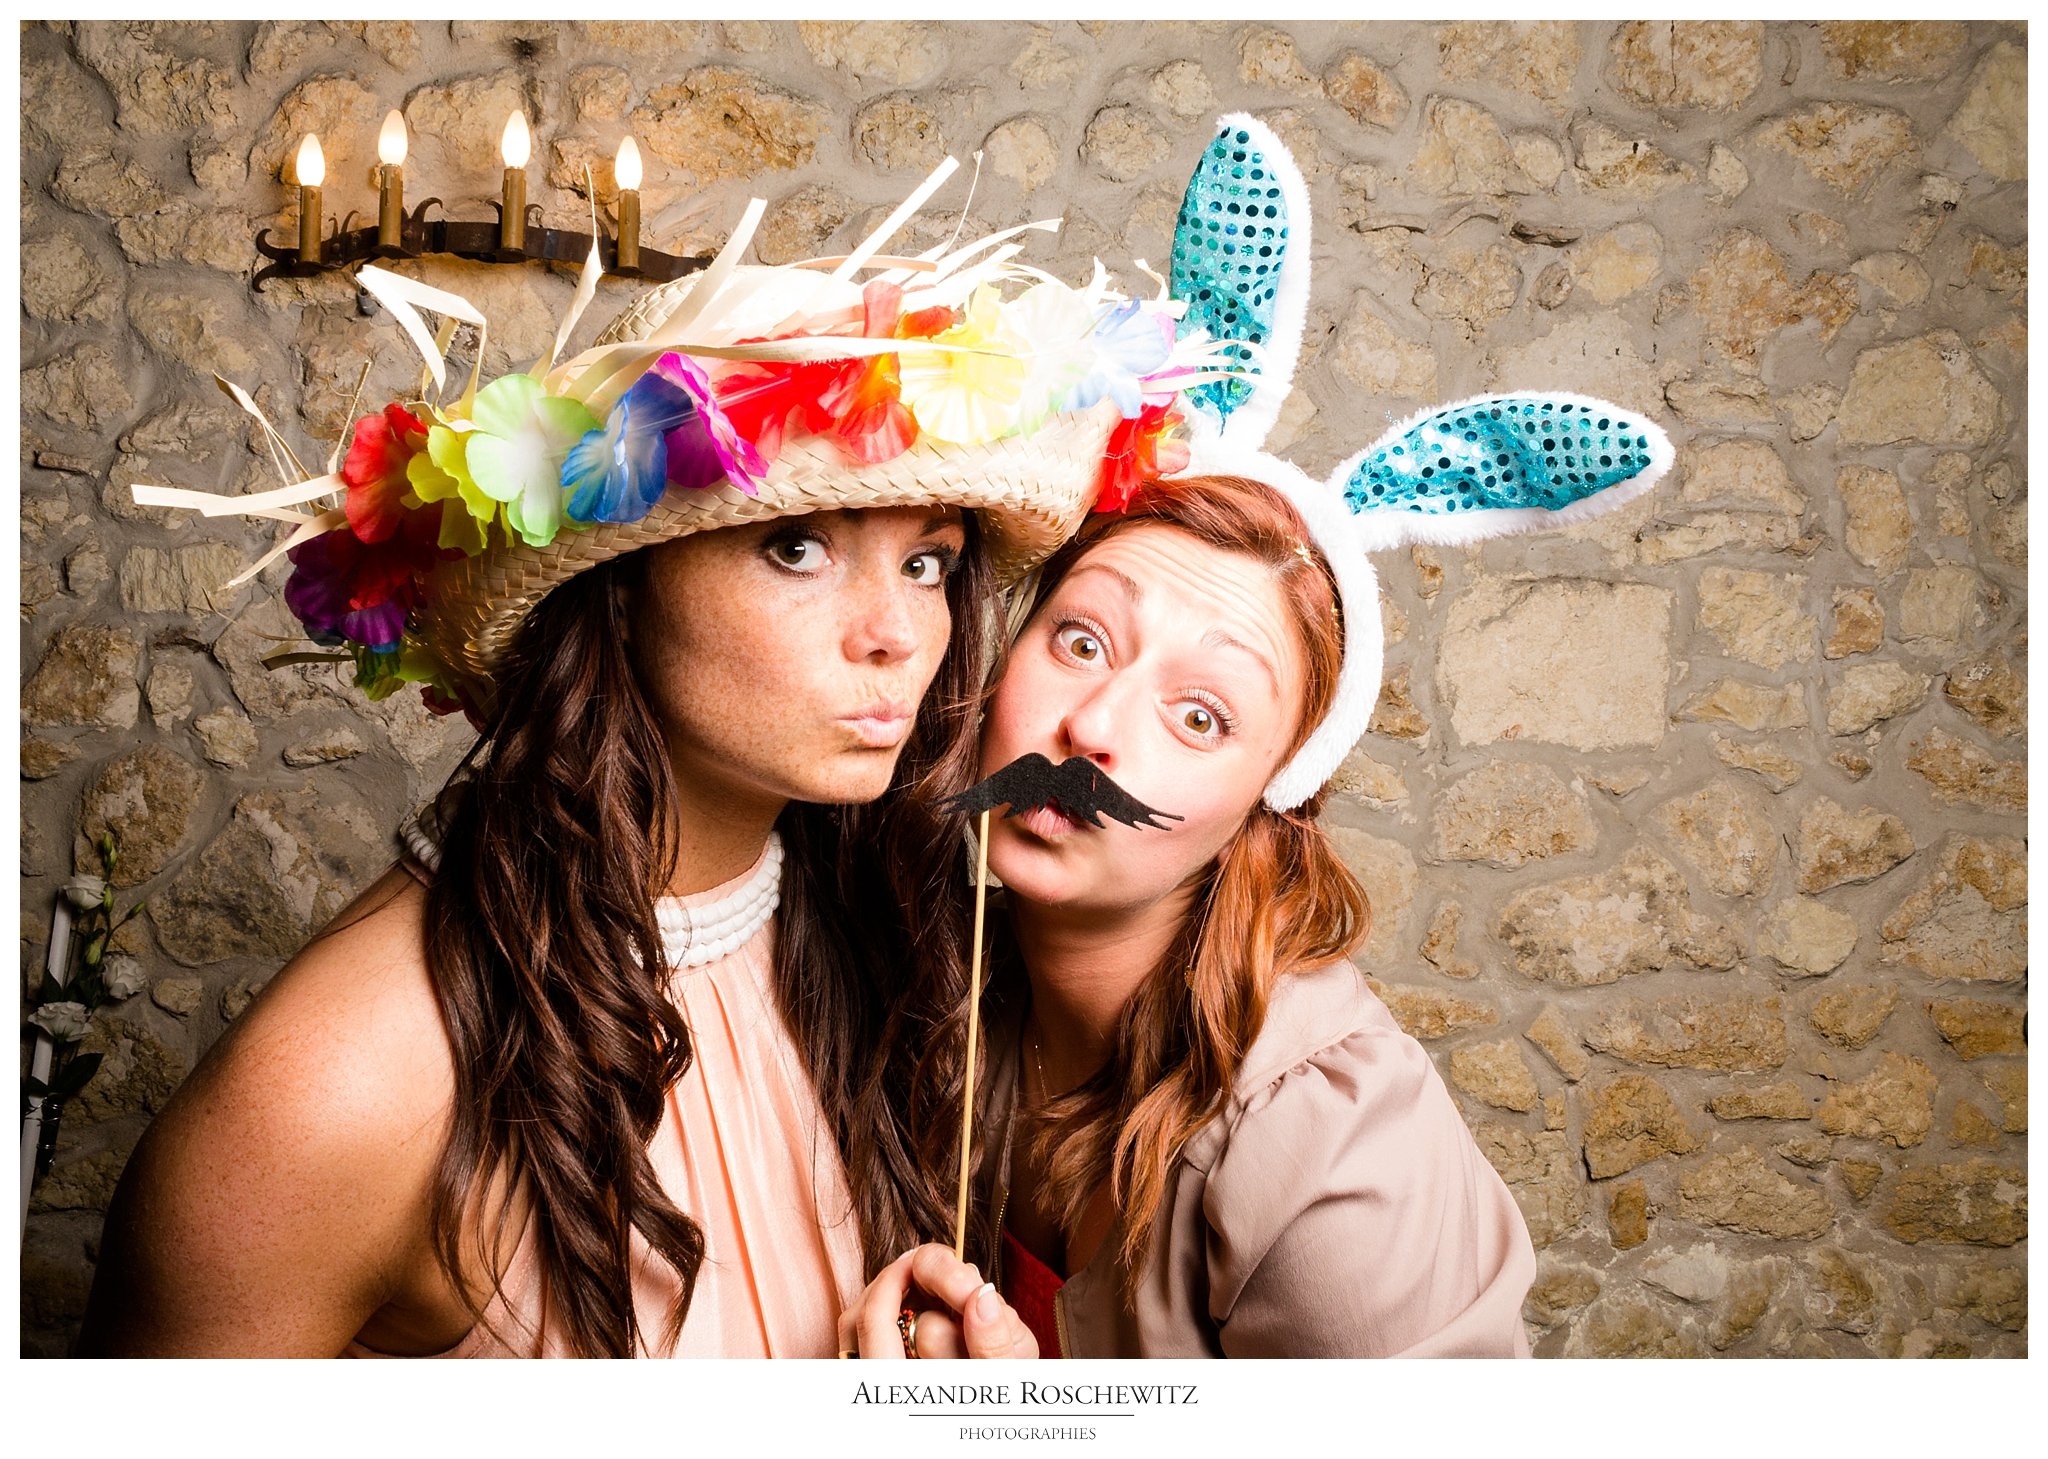 photobooth-mariage-merignac-gironde-maud-anthony-chateau-cujac-alexandre-roschewitz-photographies_1465_2048px